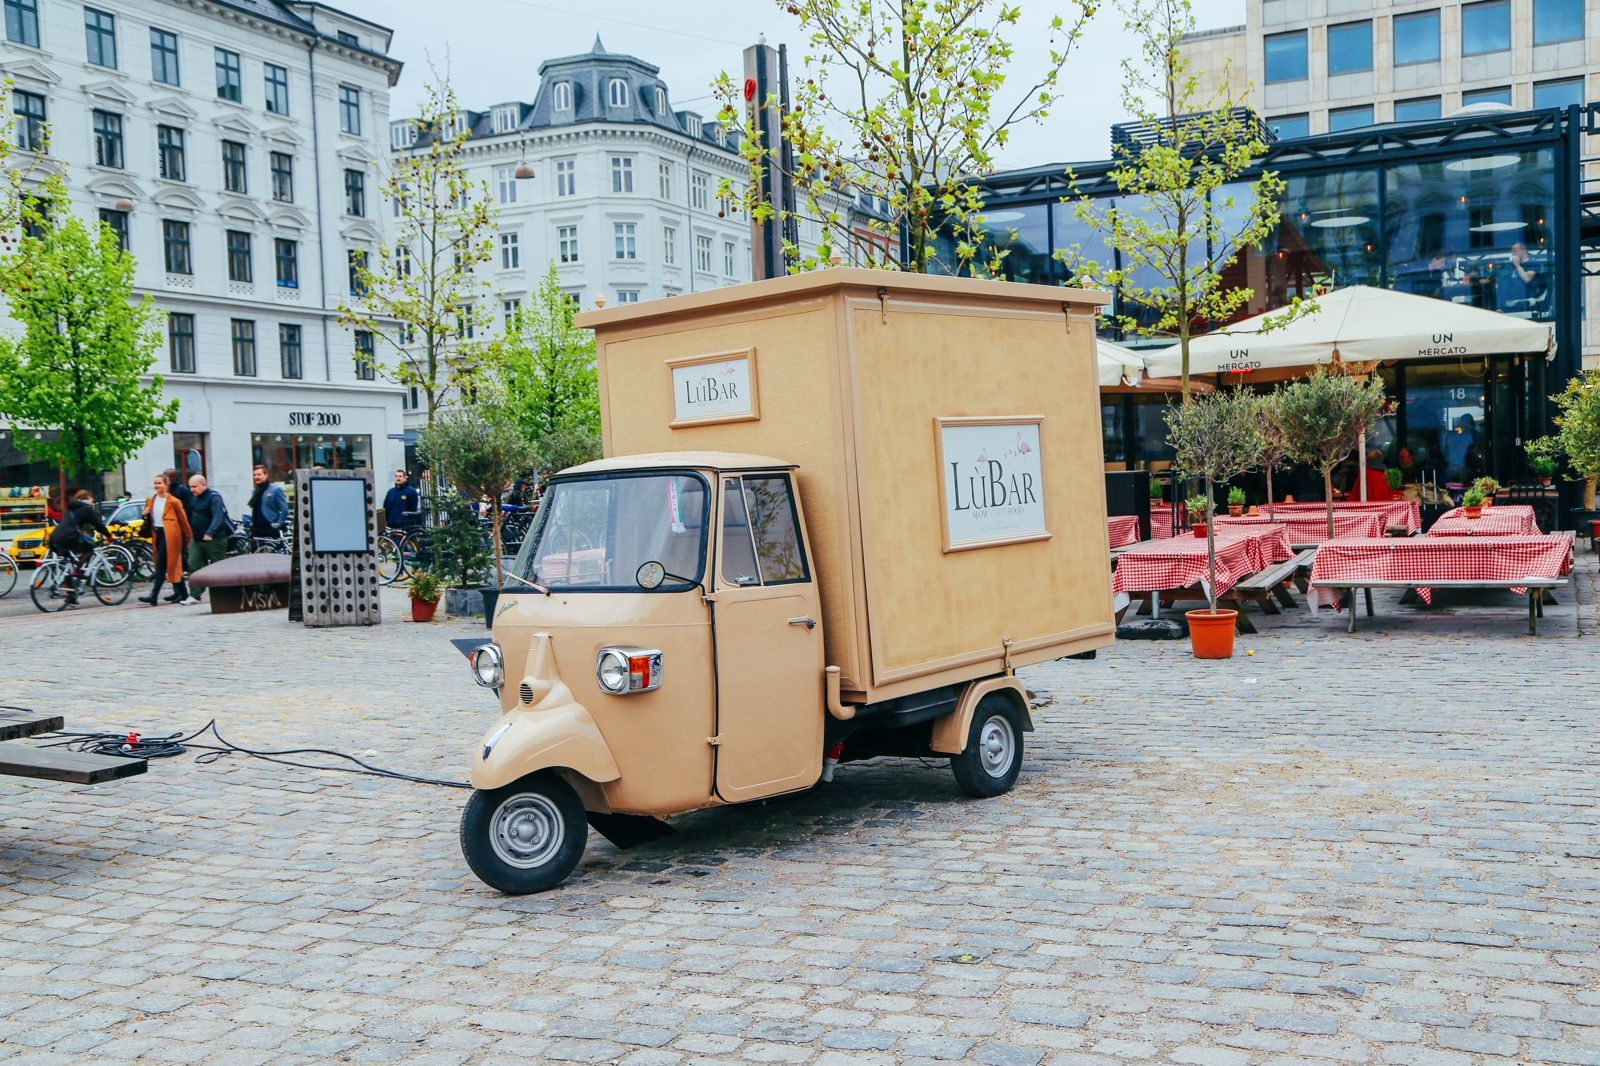 The Complete Guide On All The Things To See, Eat And Do In Copenhagen, Denmark (28)